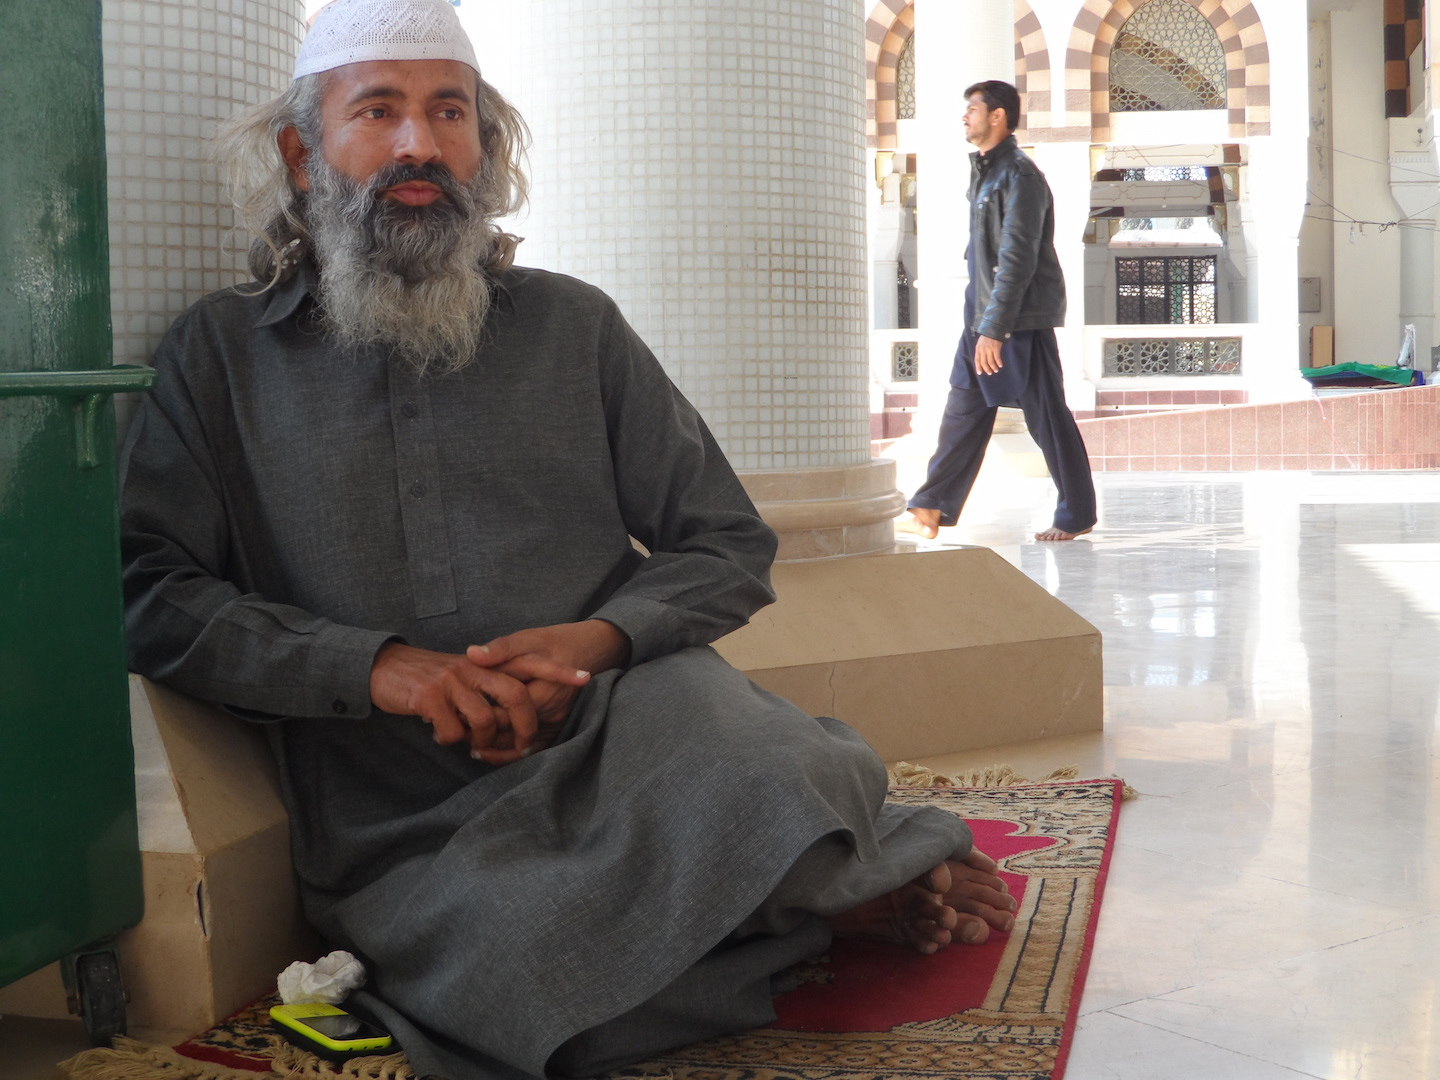 Zahid Hussain preaches at the Bari Imam Sufi shrine in Islamabad